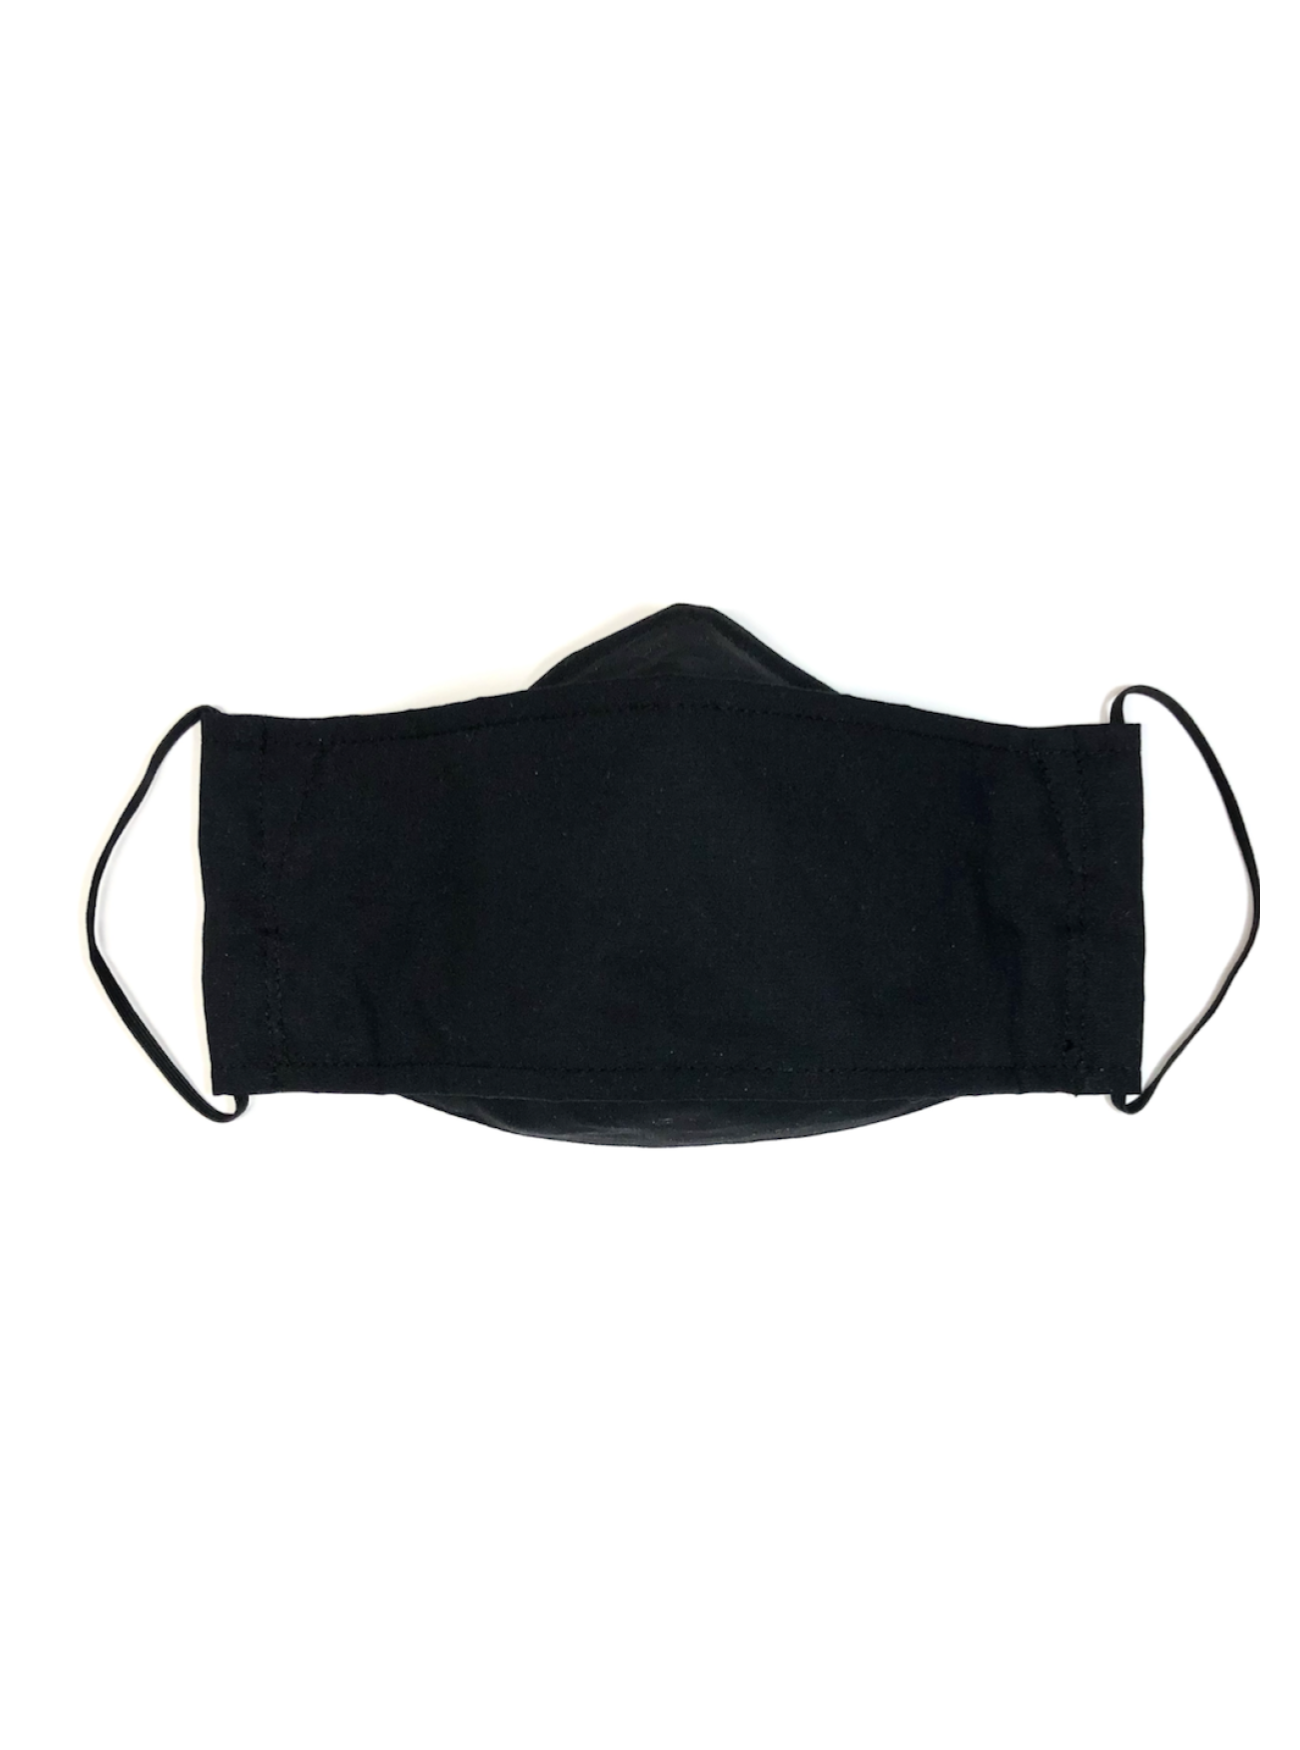 Black, Child's Reusable Face Mask [2-layers]